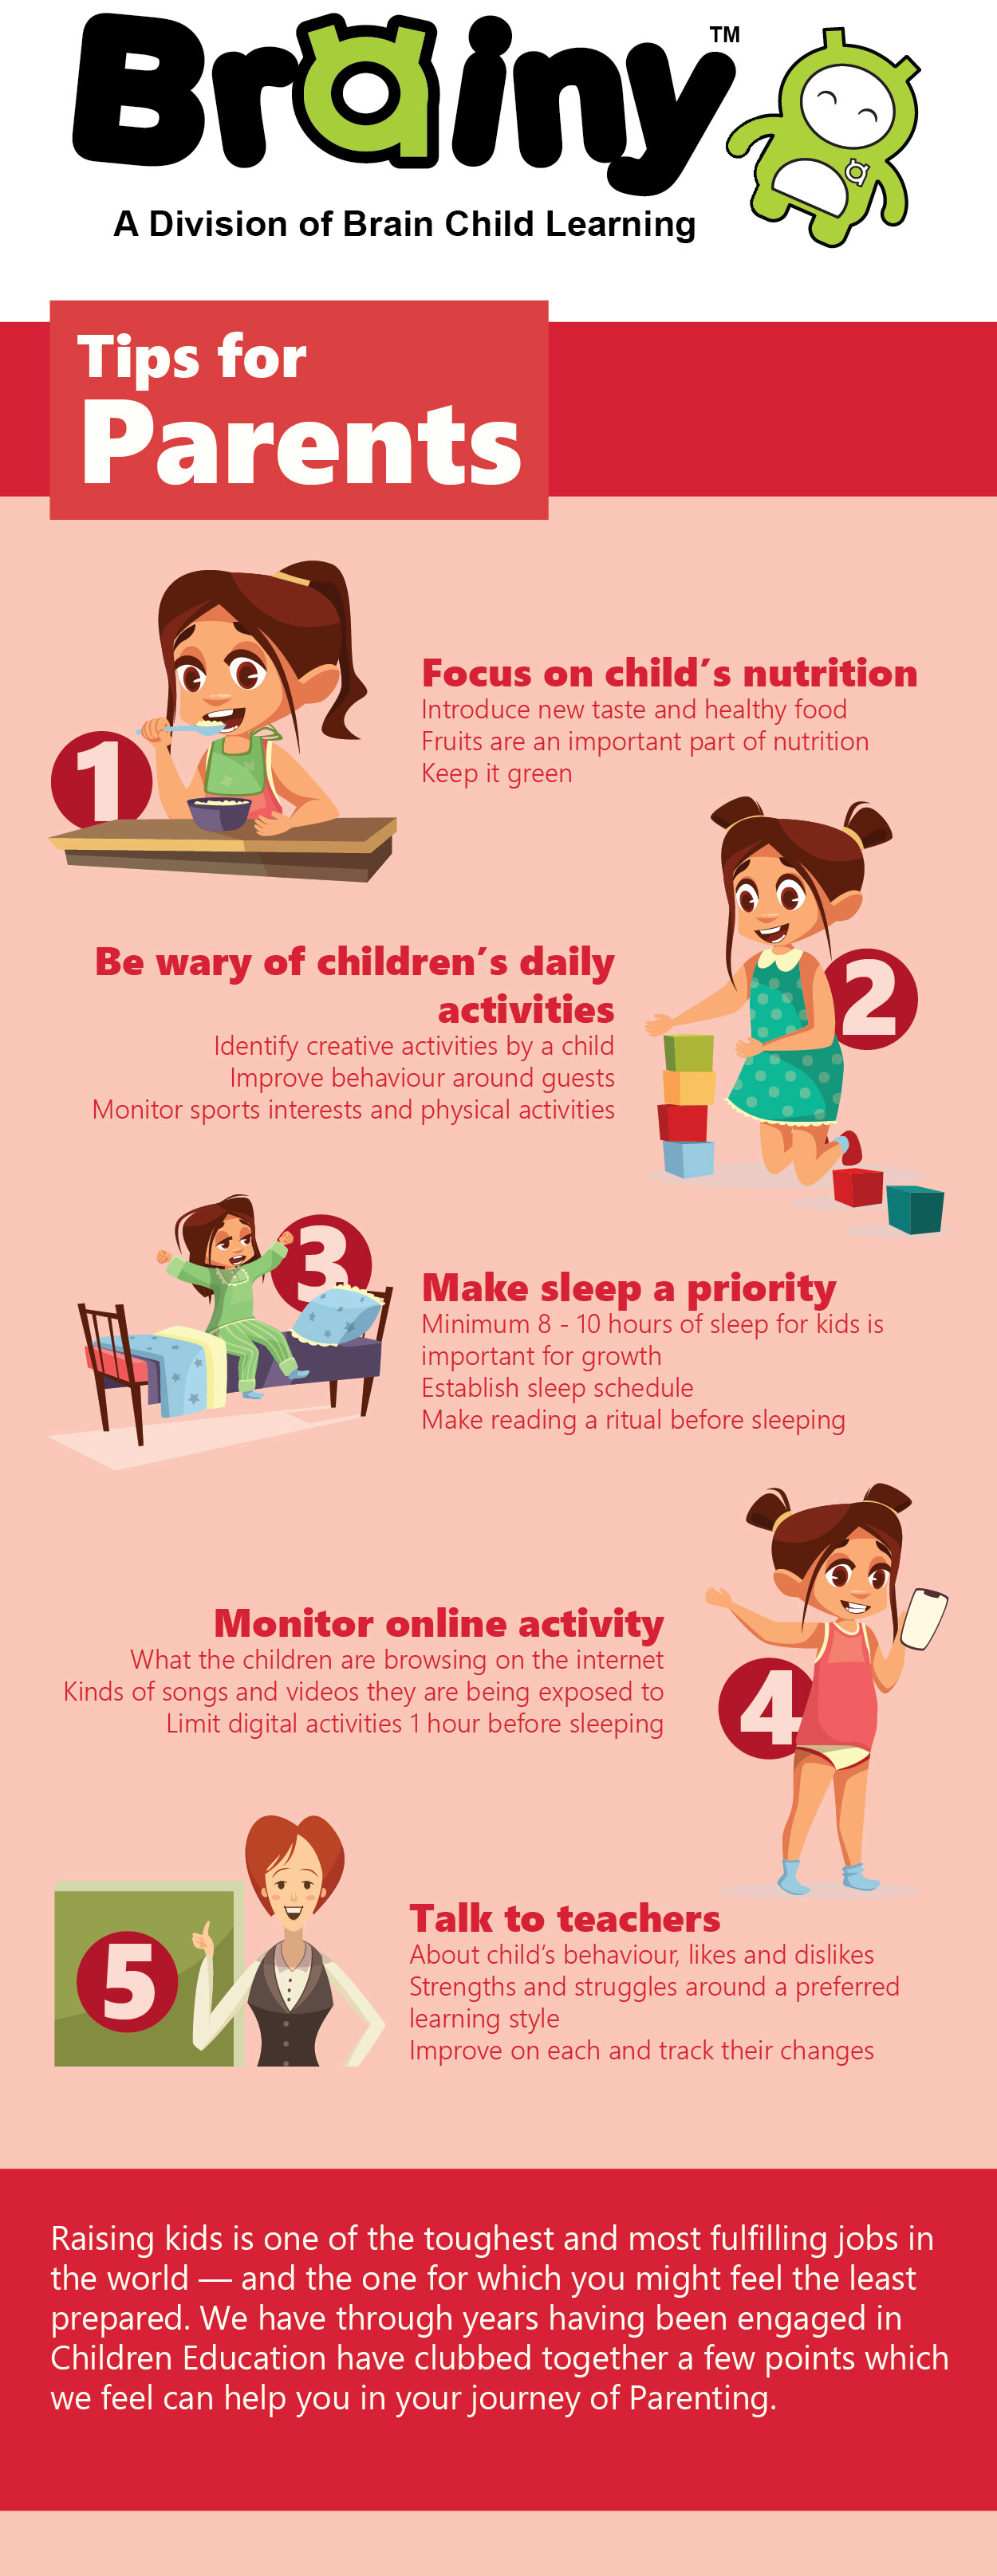 Tips for Parents to perform better at parenting